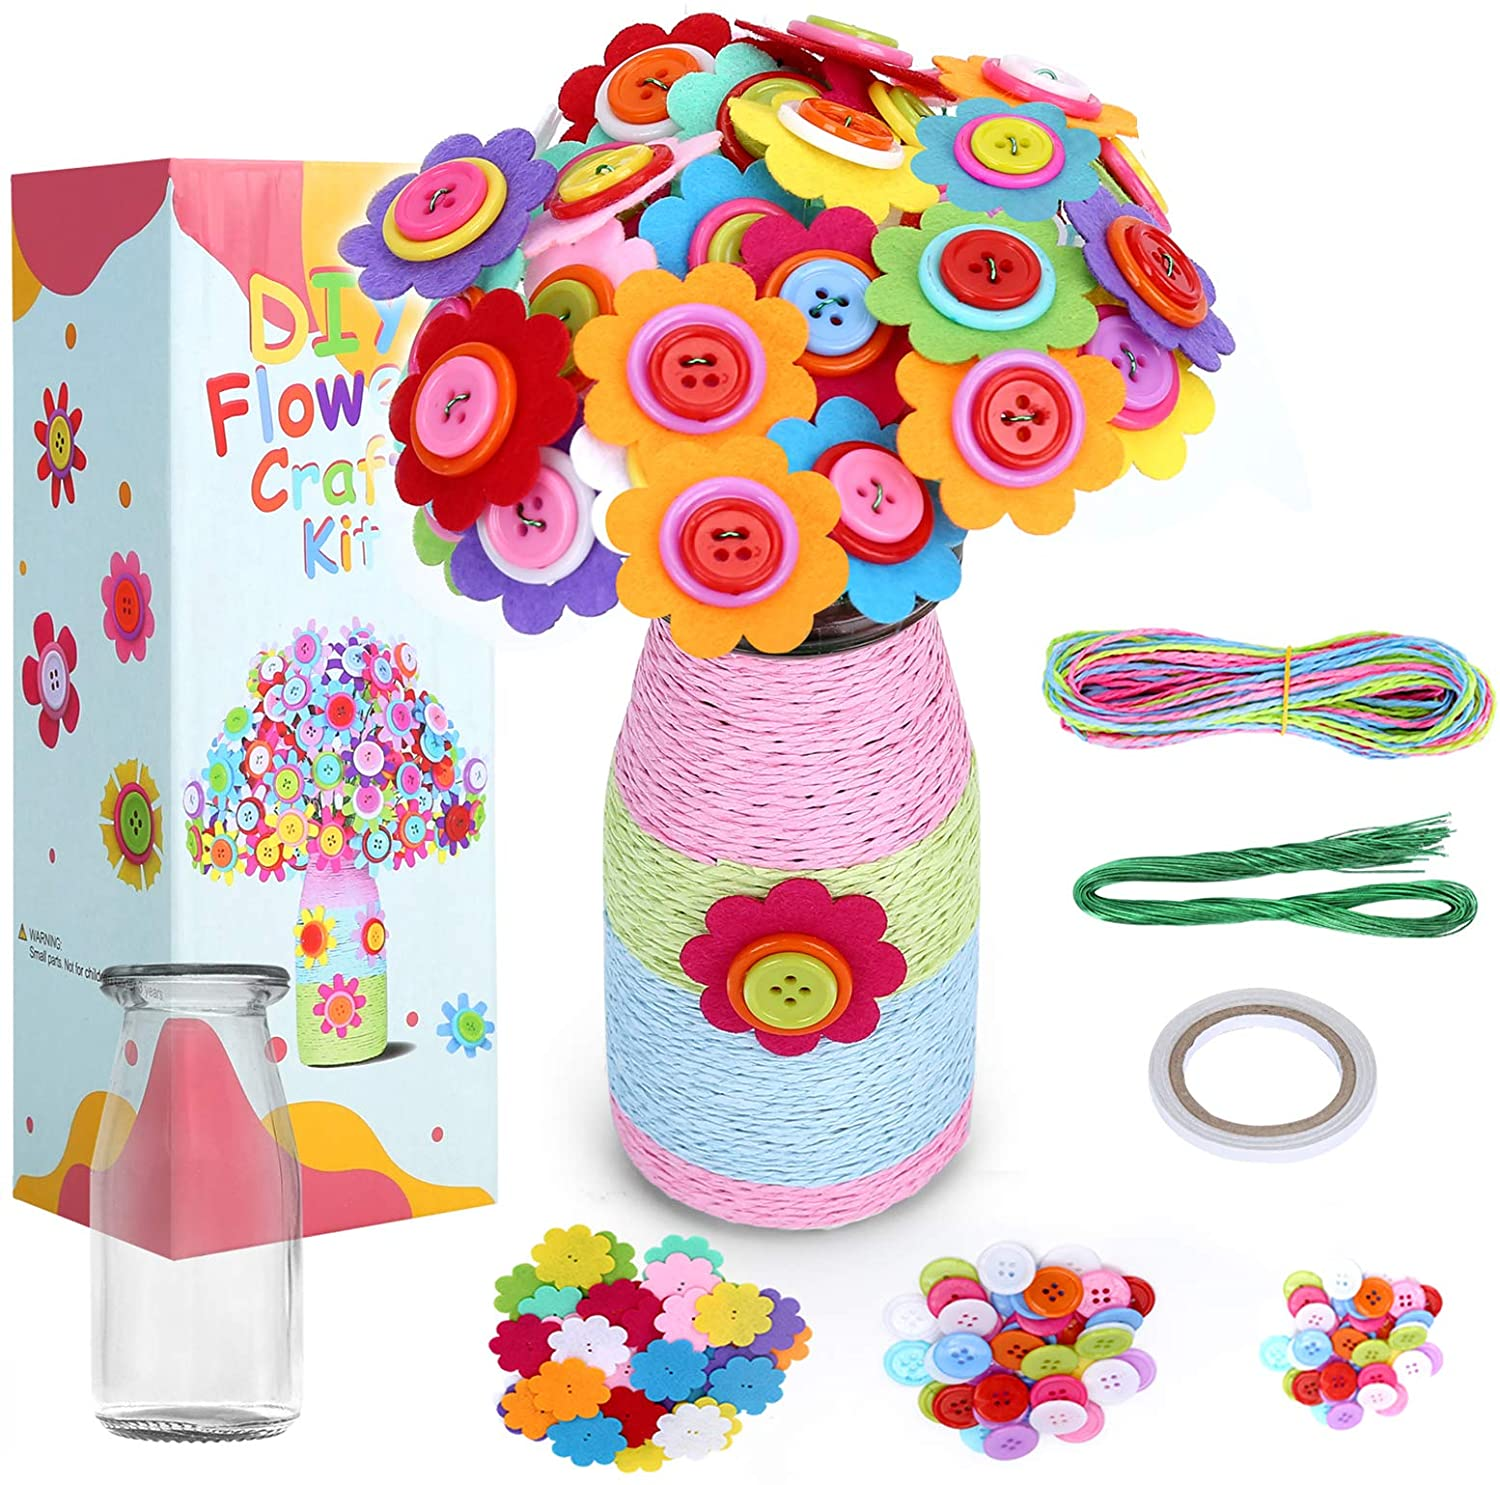 BEBEKULA DIY Flower Craft Kit Colorful Button and Craft Projects for Adults /// Kids 3Y+